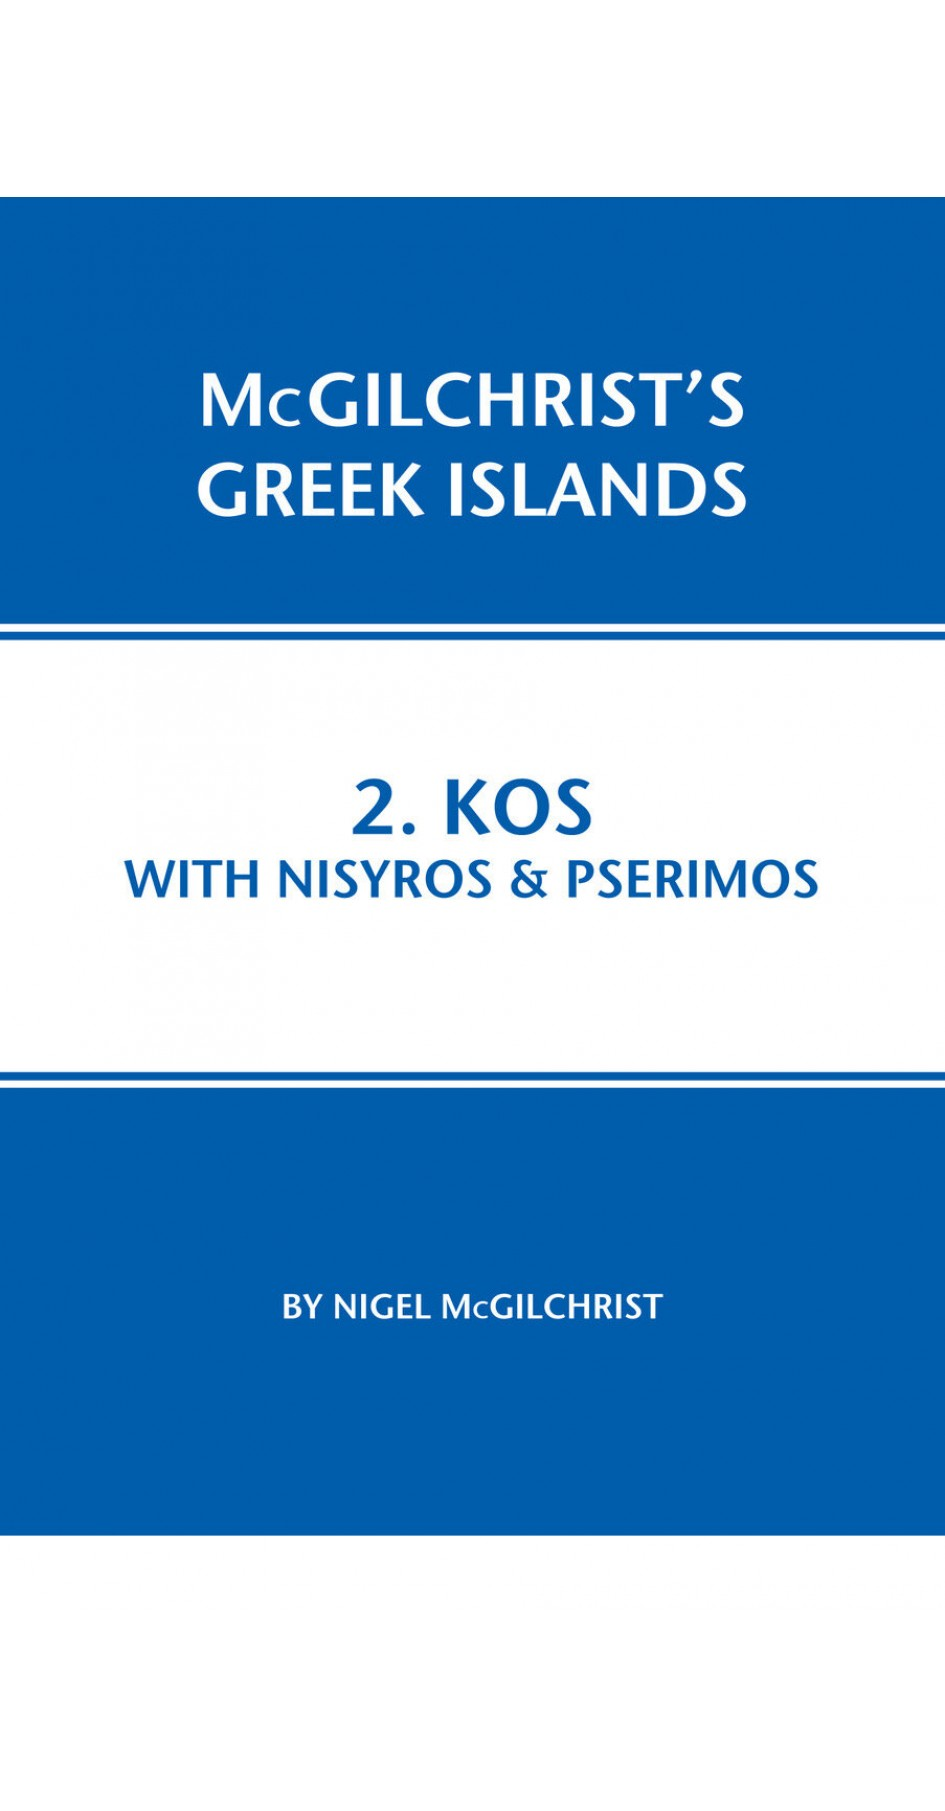 02. Kos with Nisyros & Pserimos - McGilchrist's Greek Islands